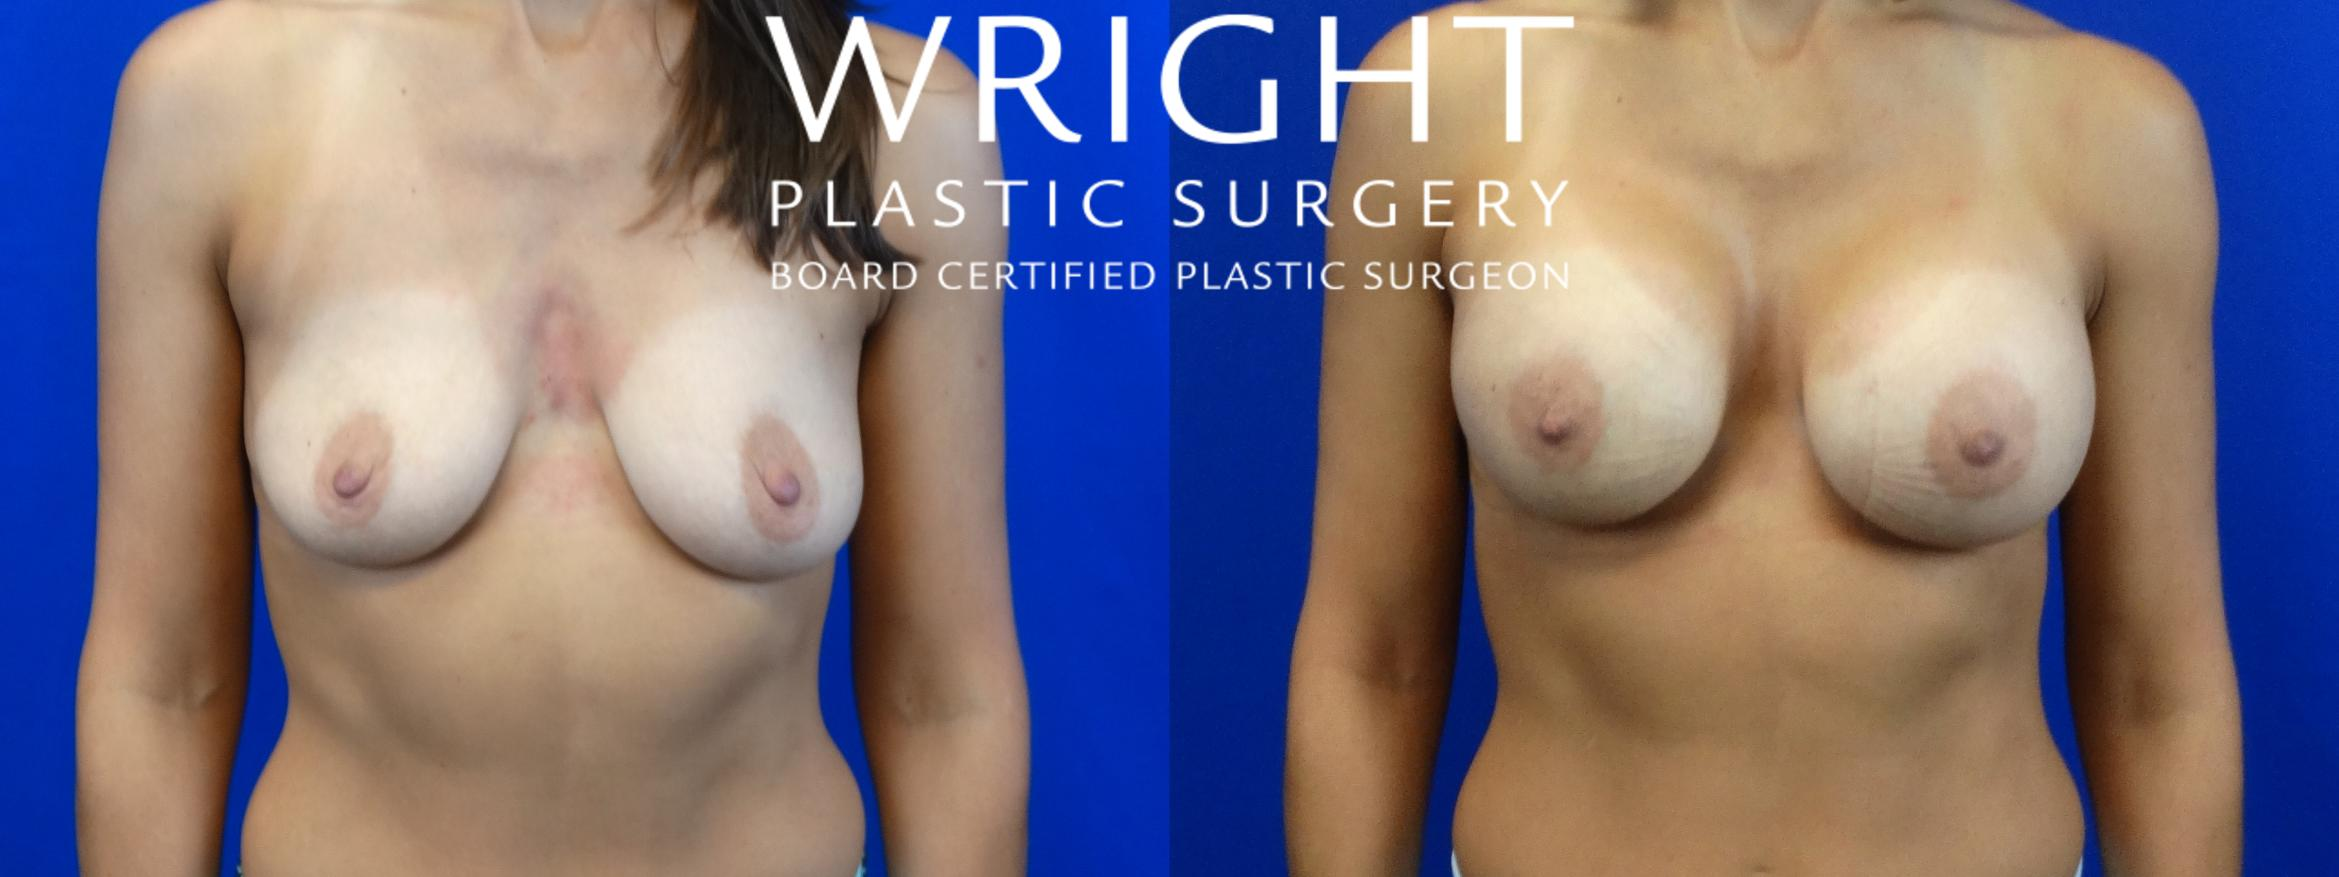 Breast Augmentation Case 8 Before & After Front | Little Rock, Arkansas | Dr. Wright Plastic Surgery